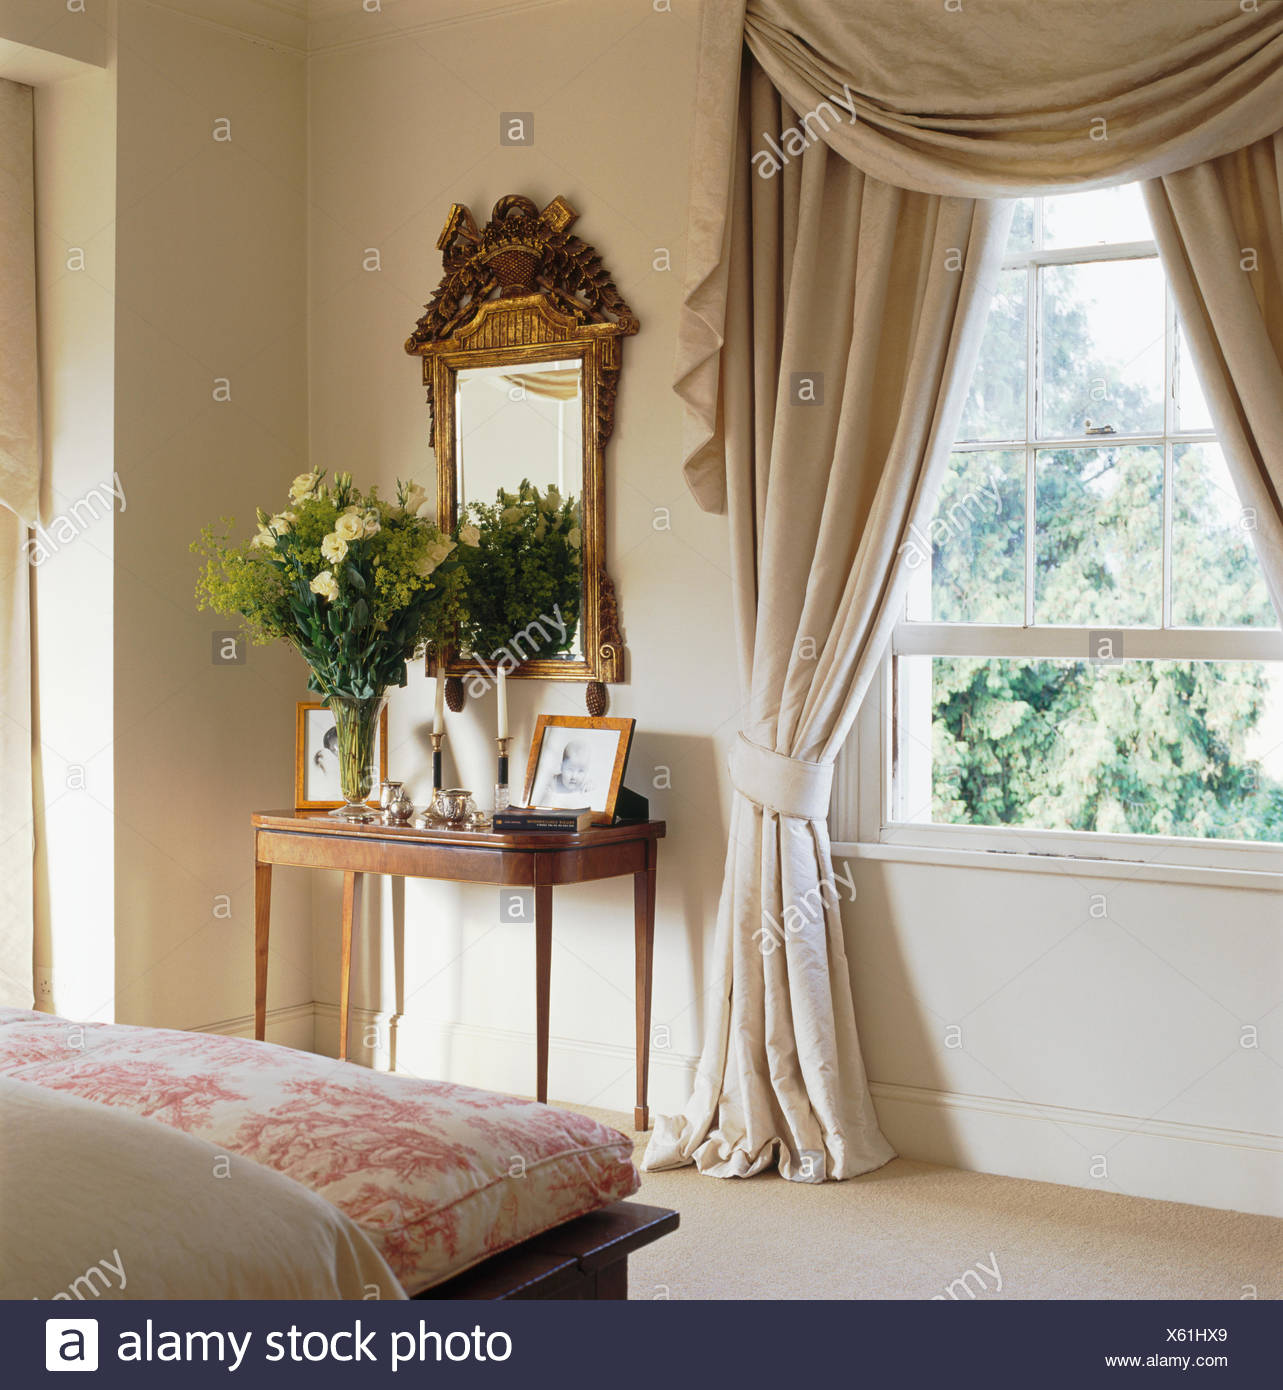 Beige Silk Swagged+tailed Pelmet And Curtains On Window In Country Bedroom  With Antique Gilt Mirror Above Small Table